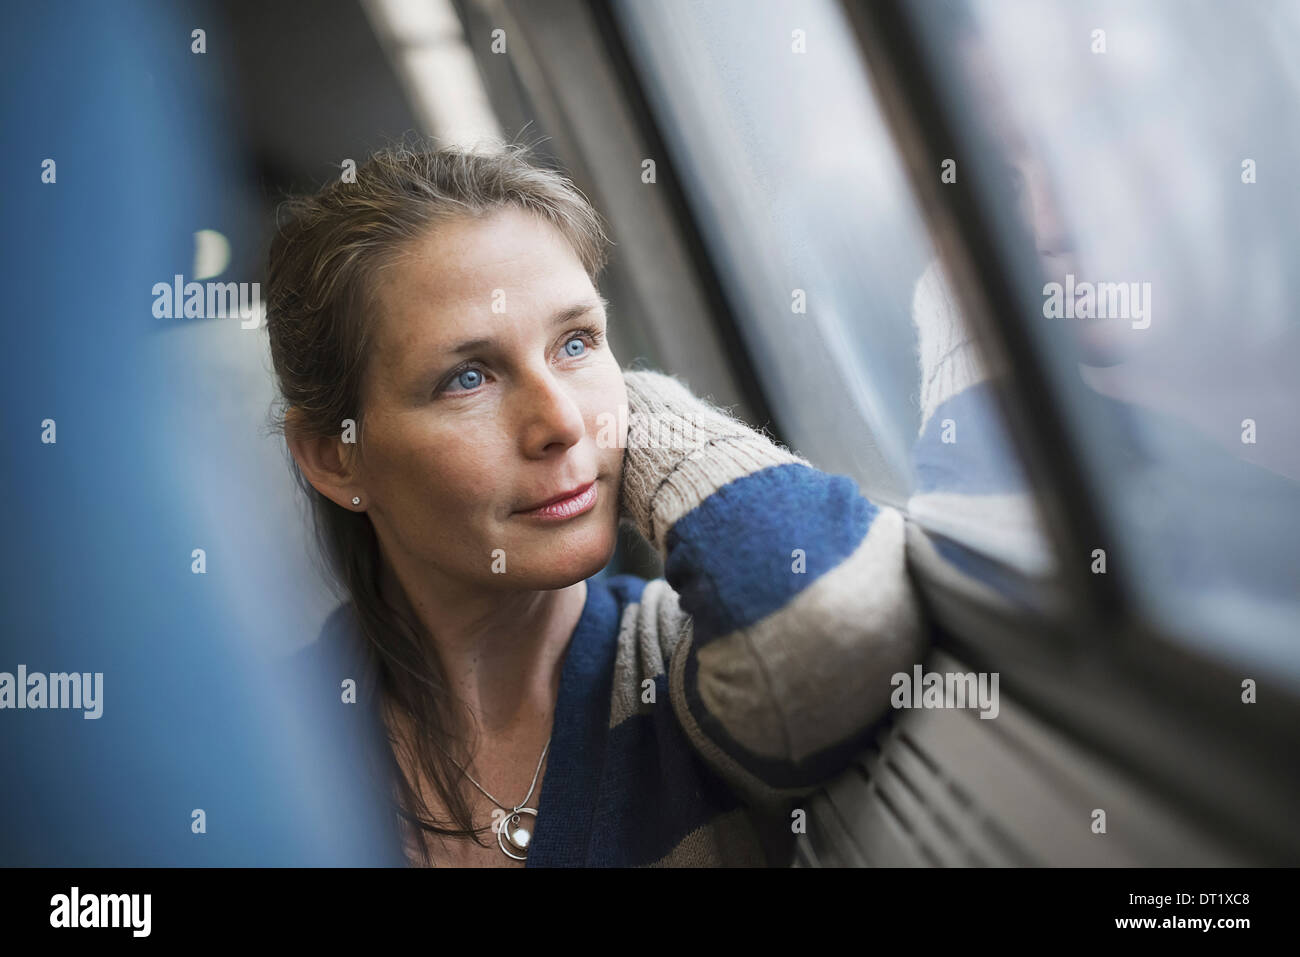 A woman sitting at a window seat in a train carriage resting her head on her hand Looking into the distance - Stock Image